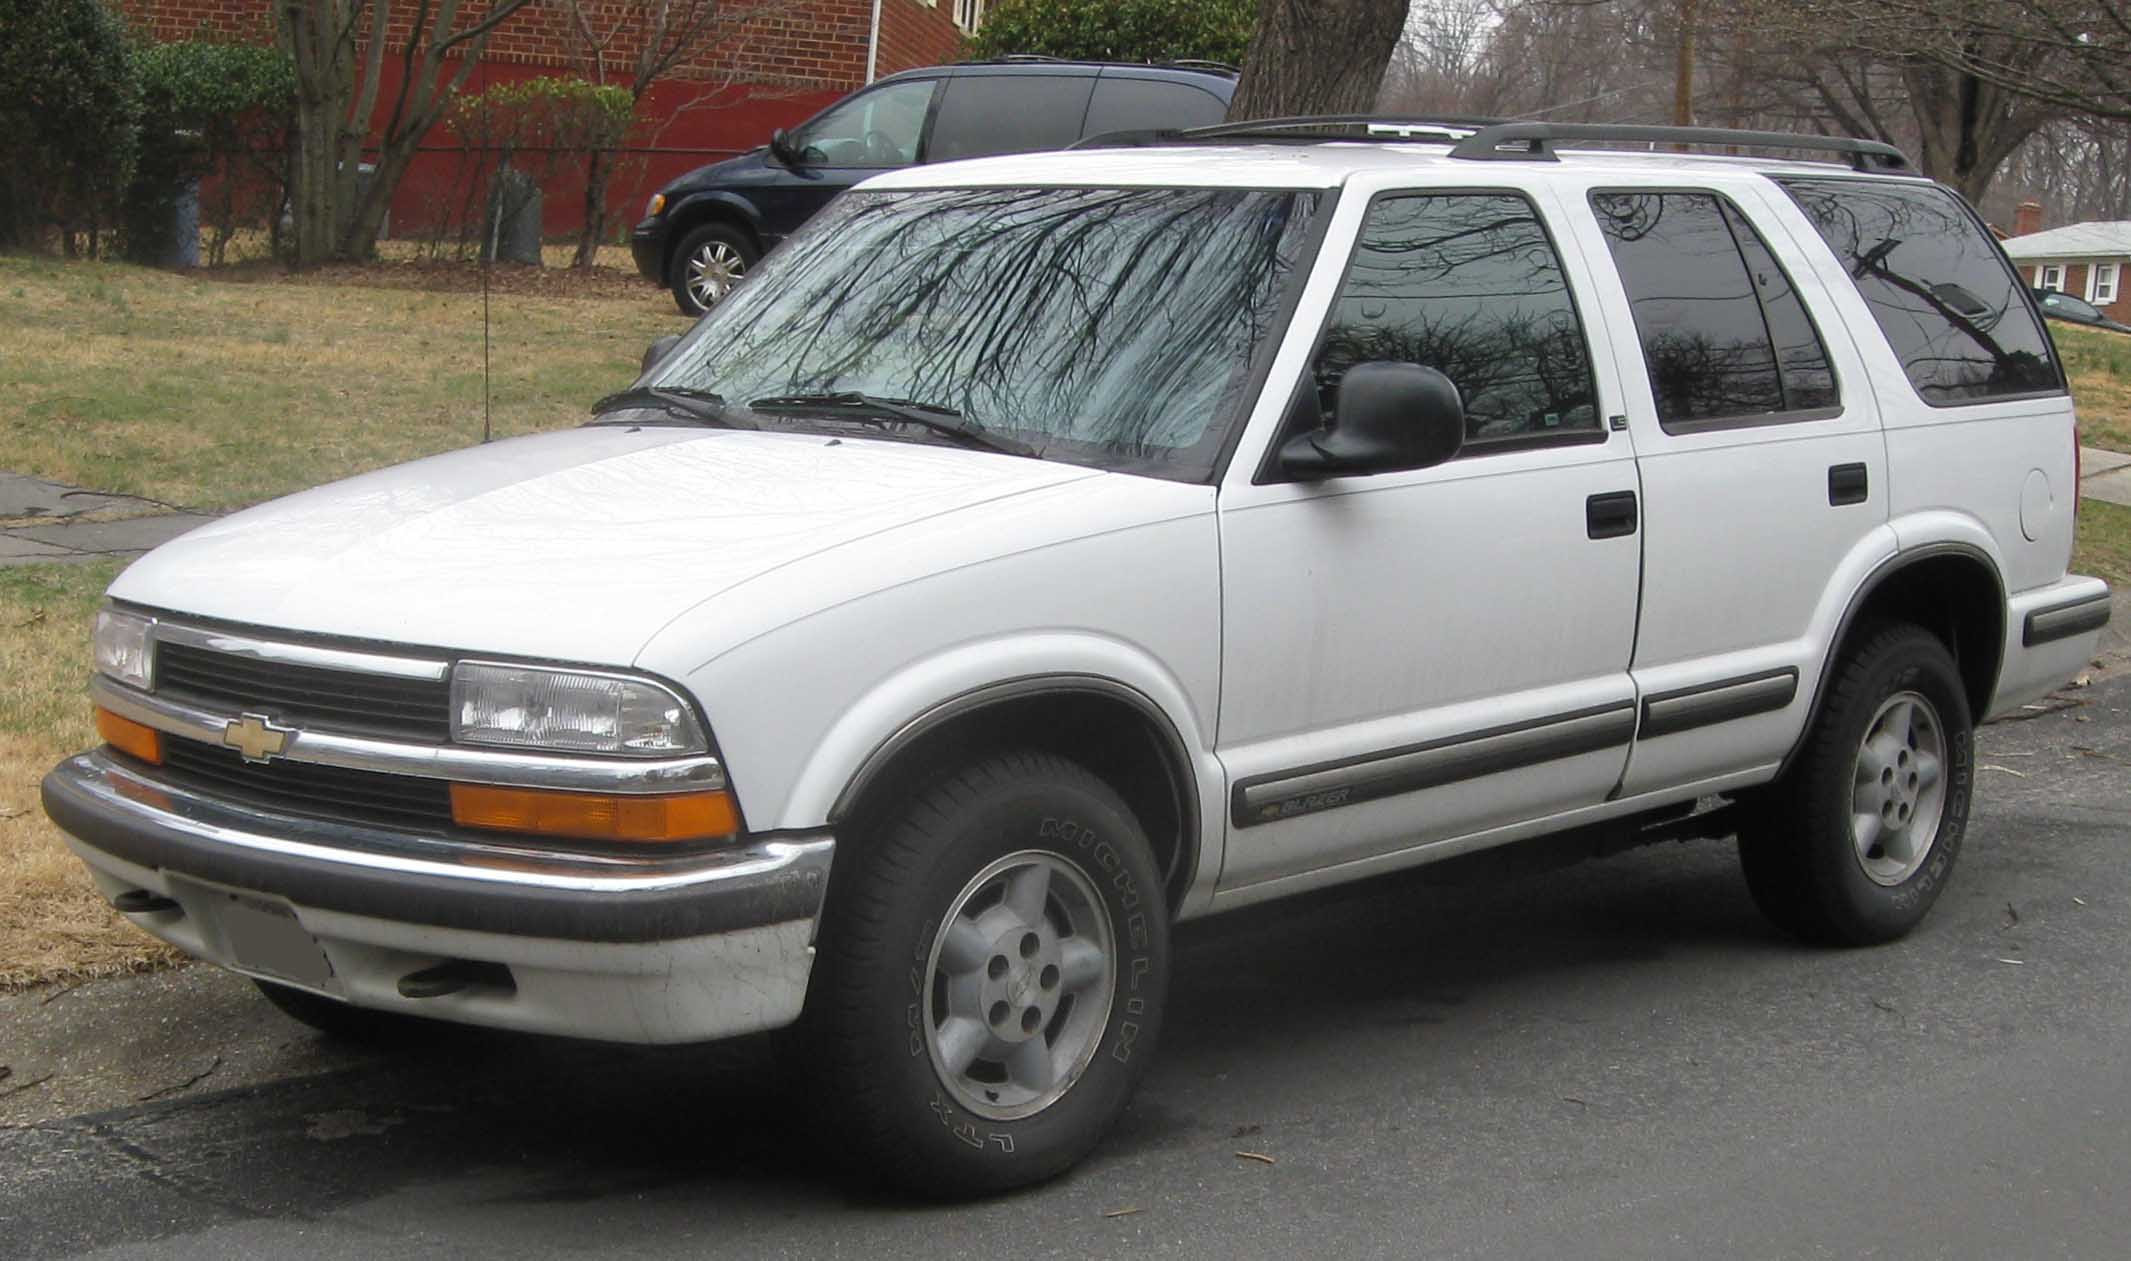 Description 98-05 Chevrolet S-10 Blazer LS 4-door.jpg